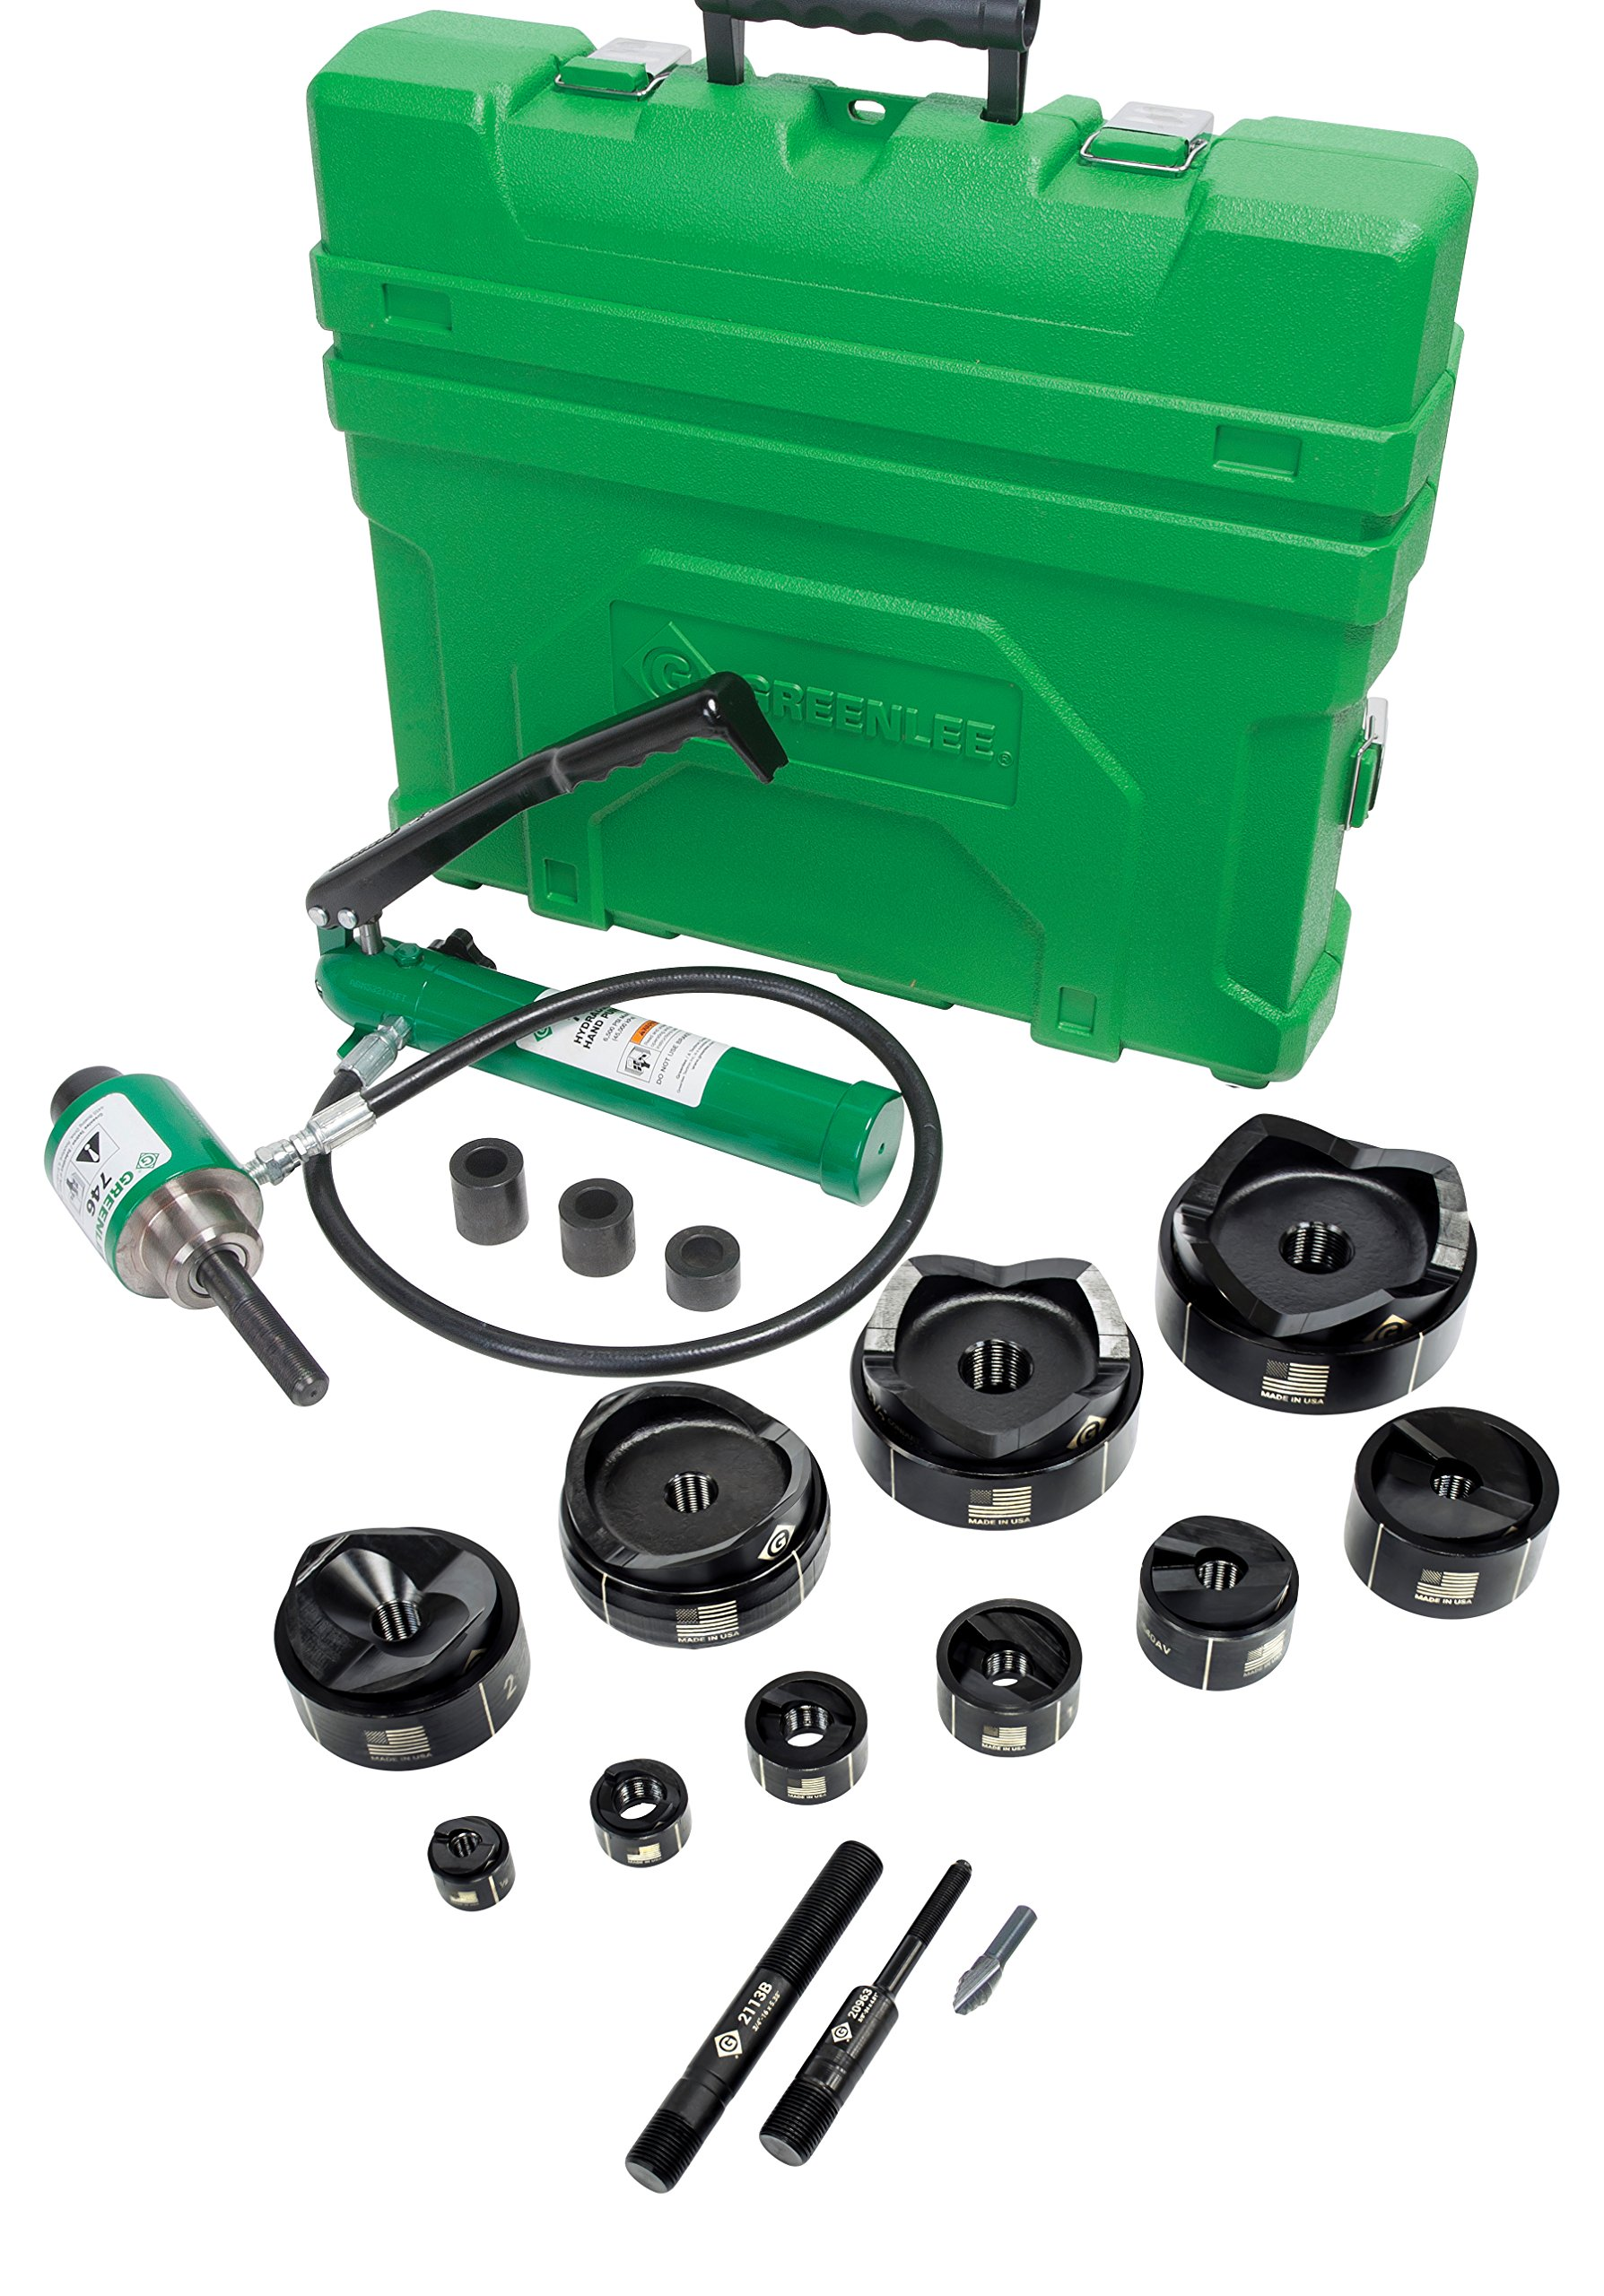 Greenlee 7310SB Ram and Hand Pump Hydraulic Driver Kit with 10 Slug Buster Punches